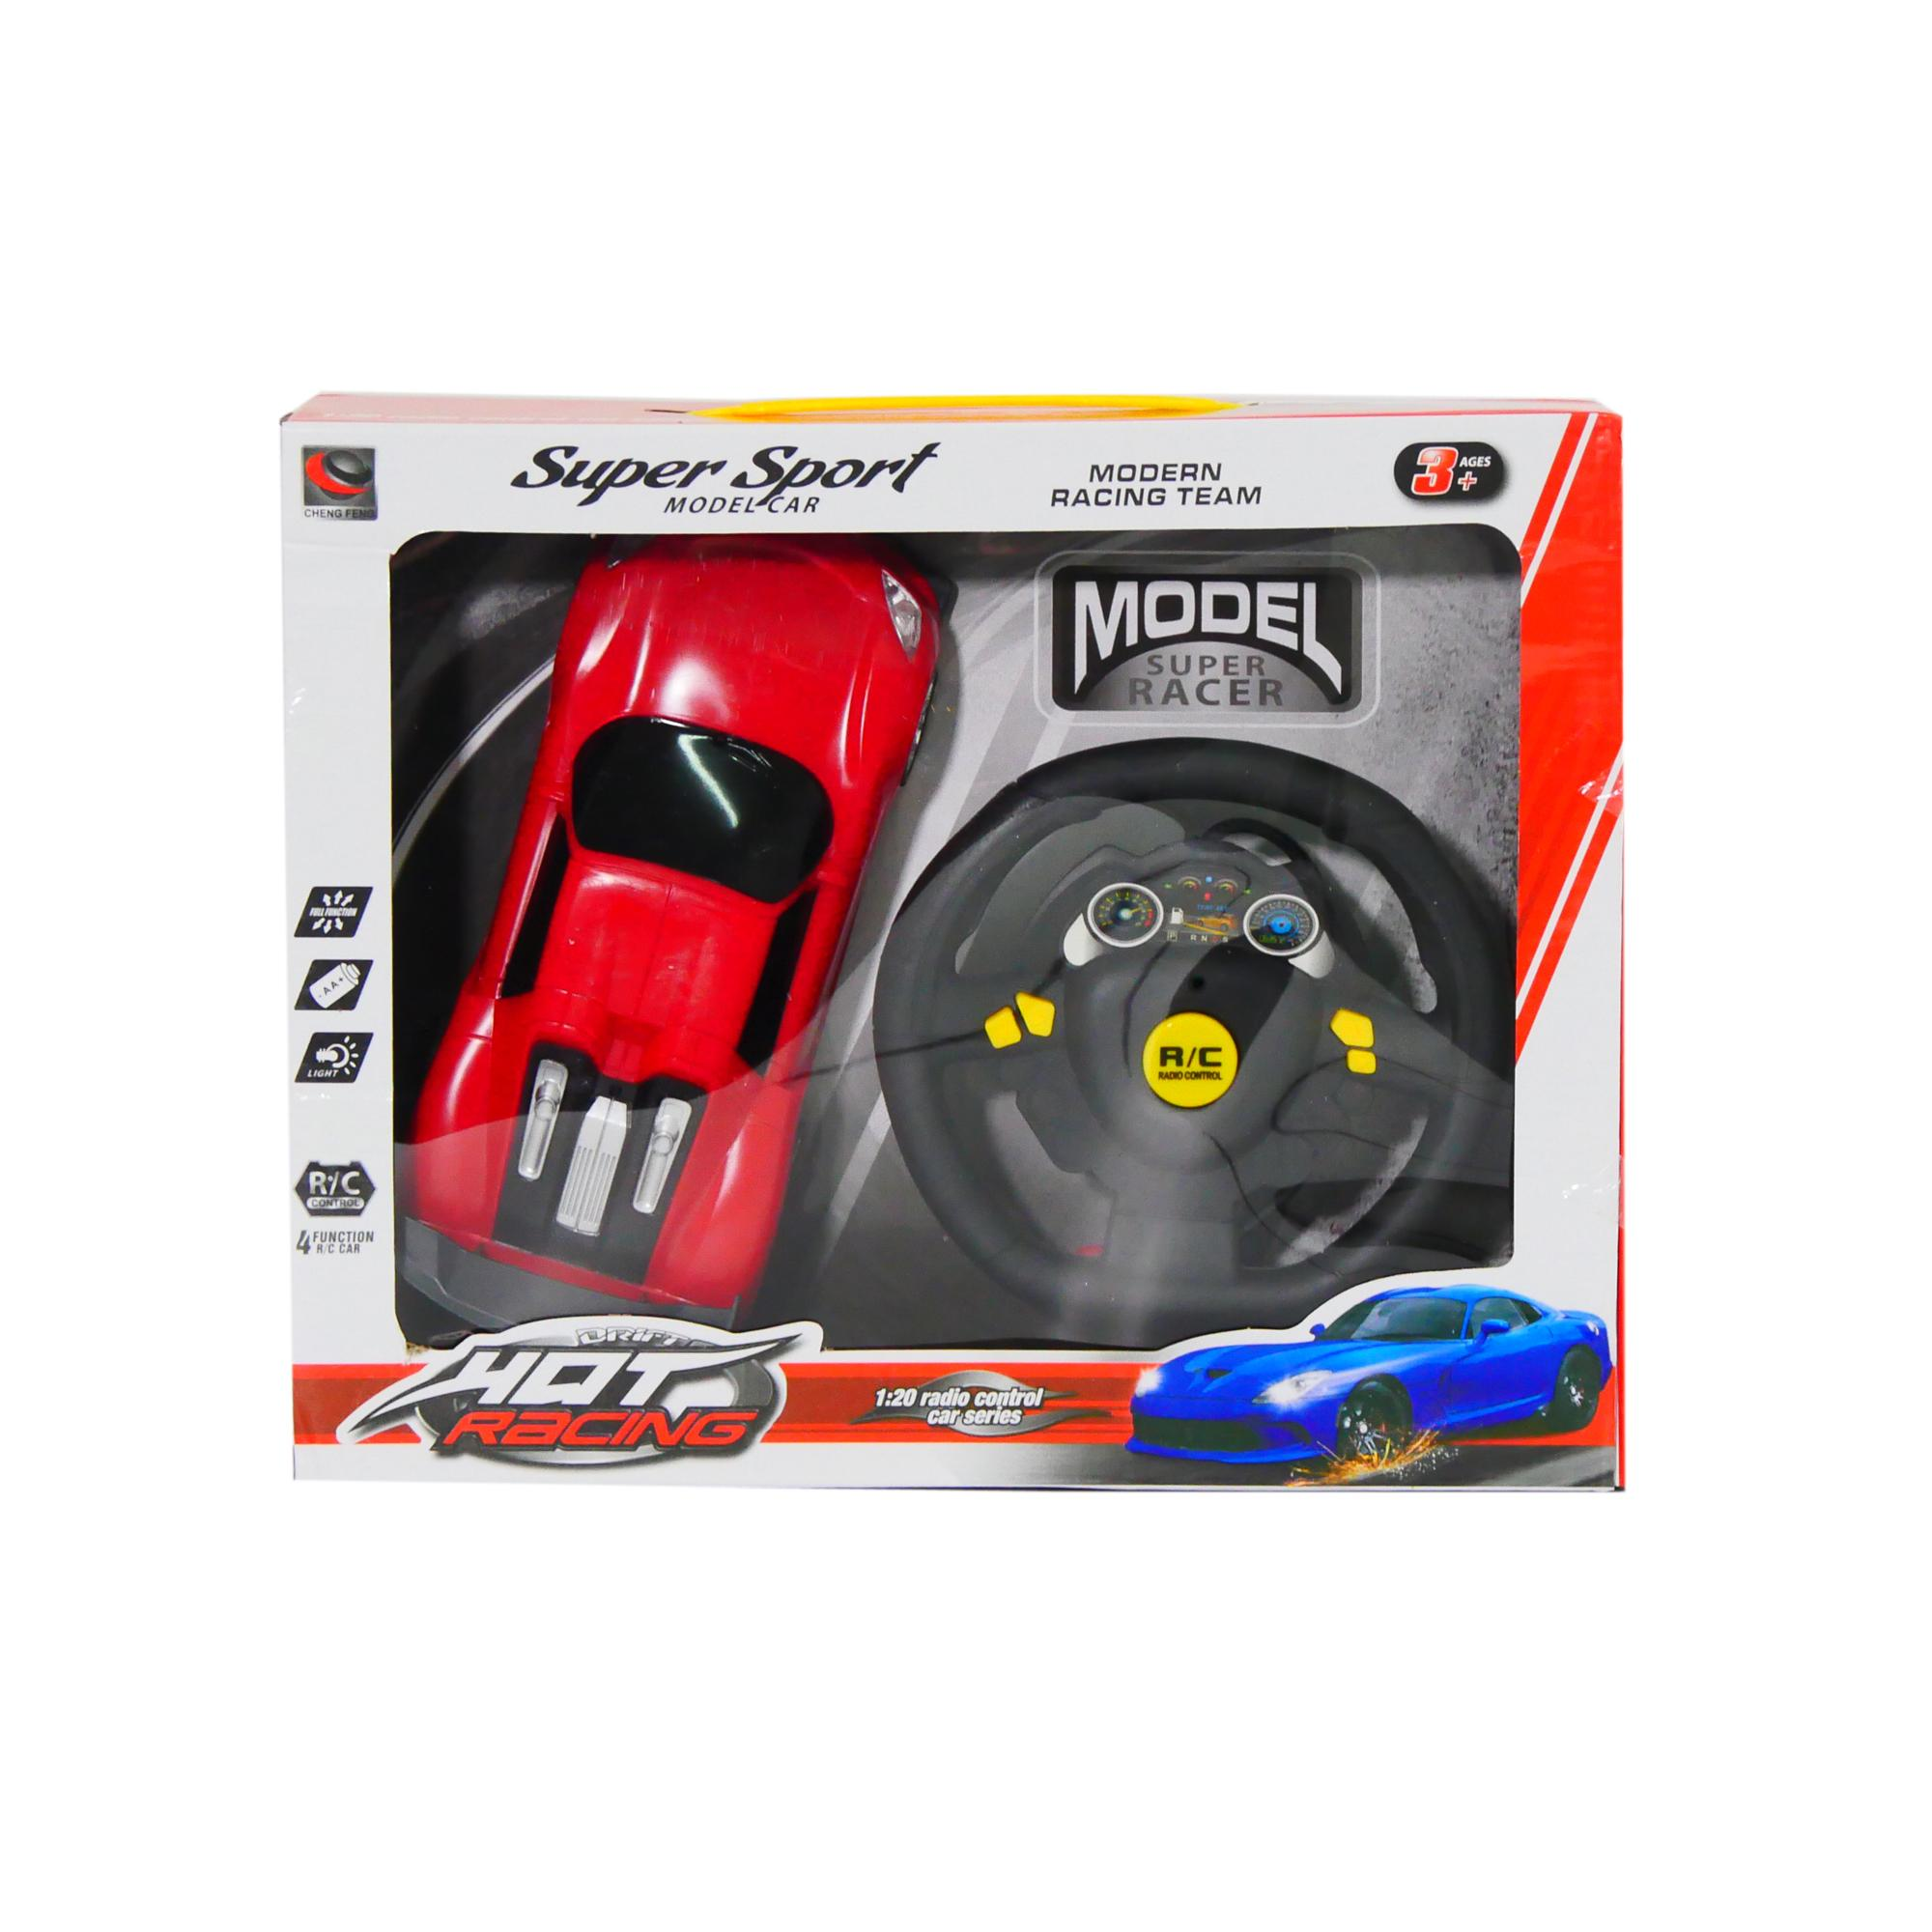 Rc Cars For Sale Remote Control Online Brands Prices Parts Rustler Traxxas Brushed Quick Start Manual Exploded View Drift Hot Racing Supper Sport Model Car 999 53